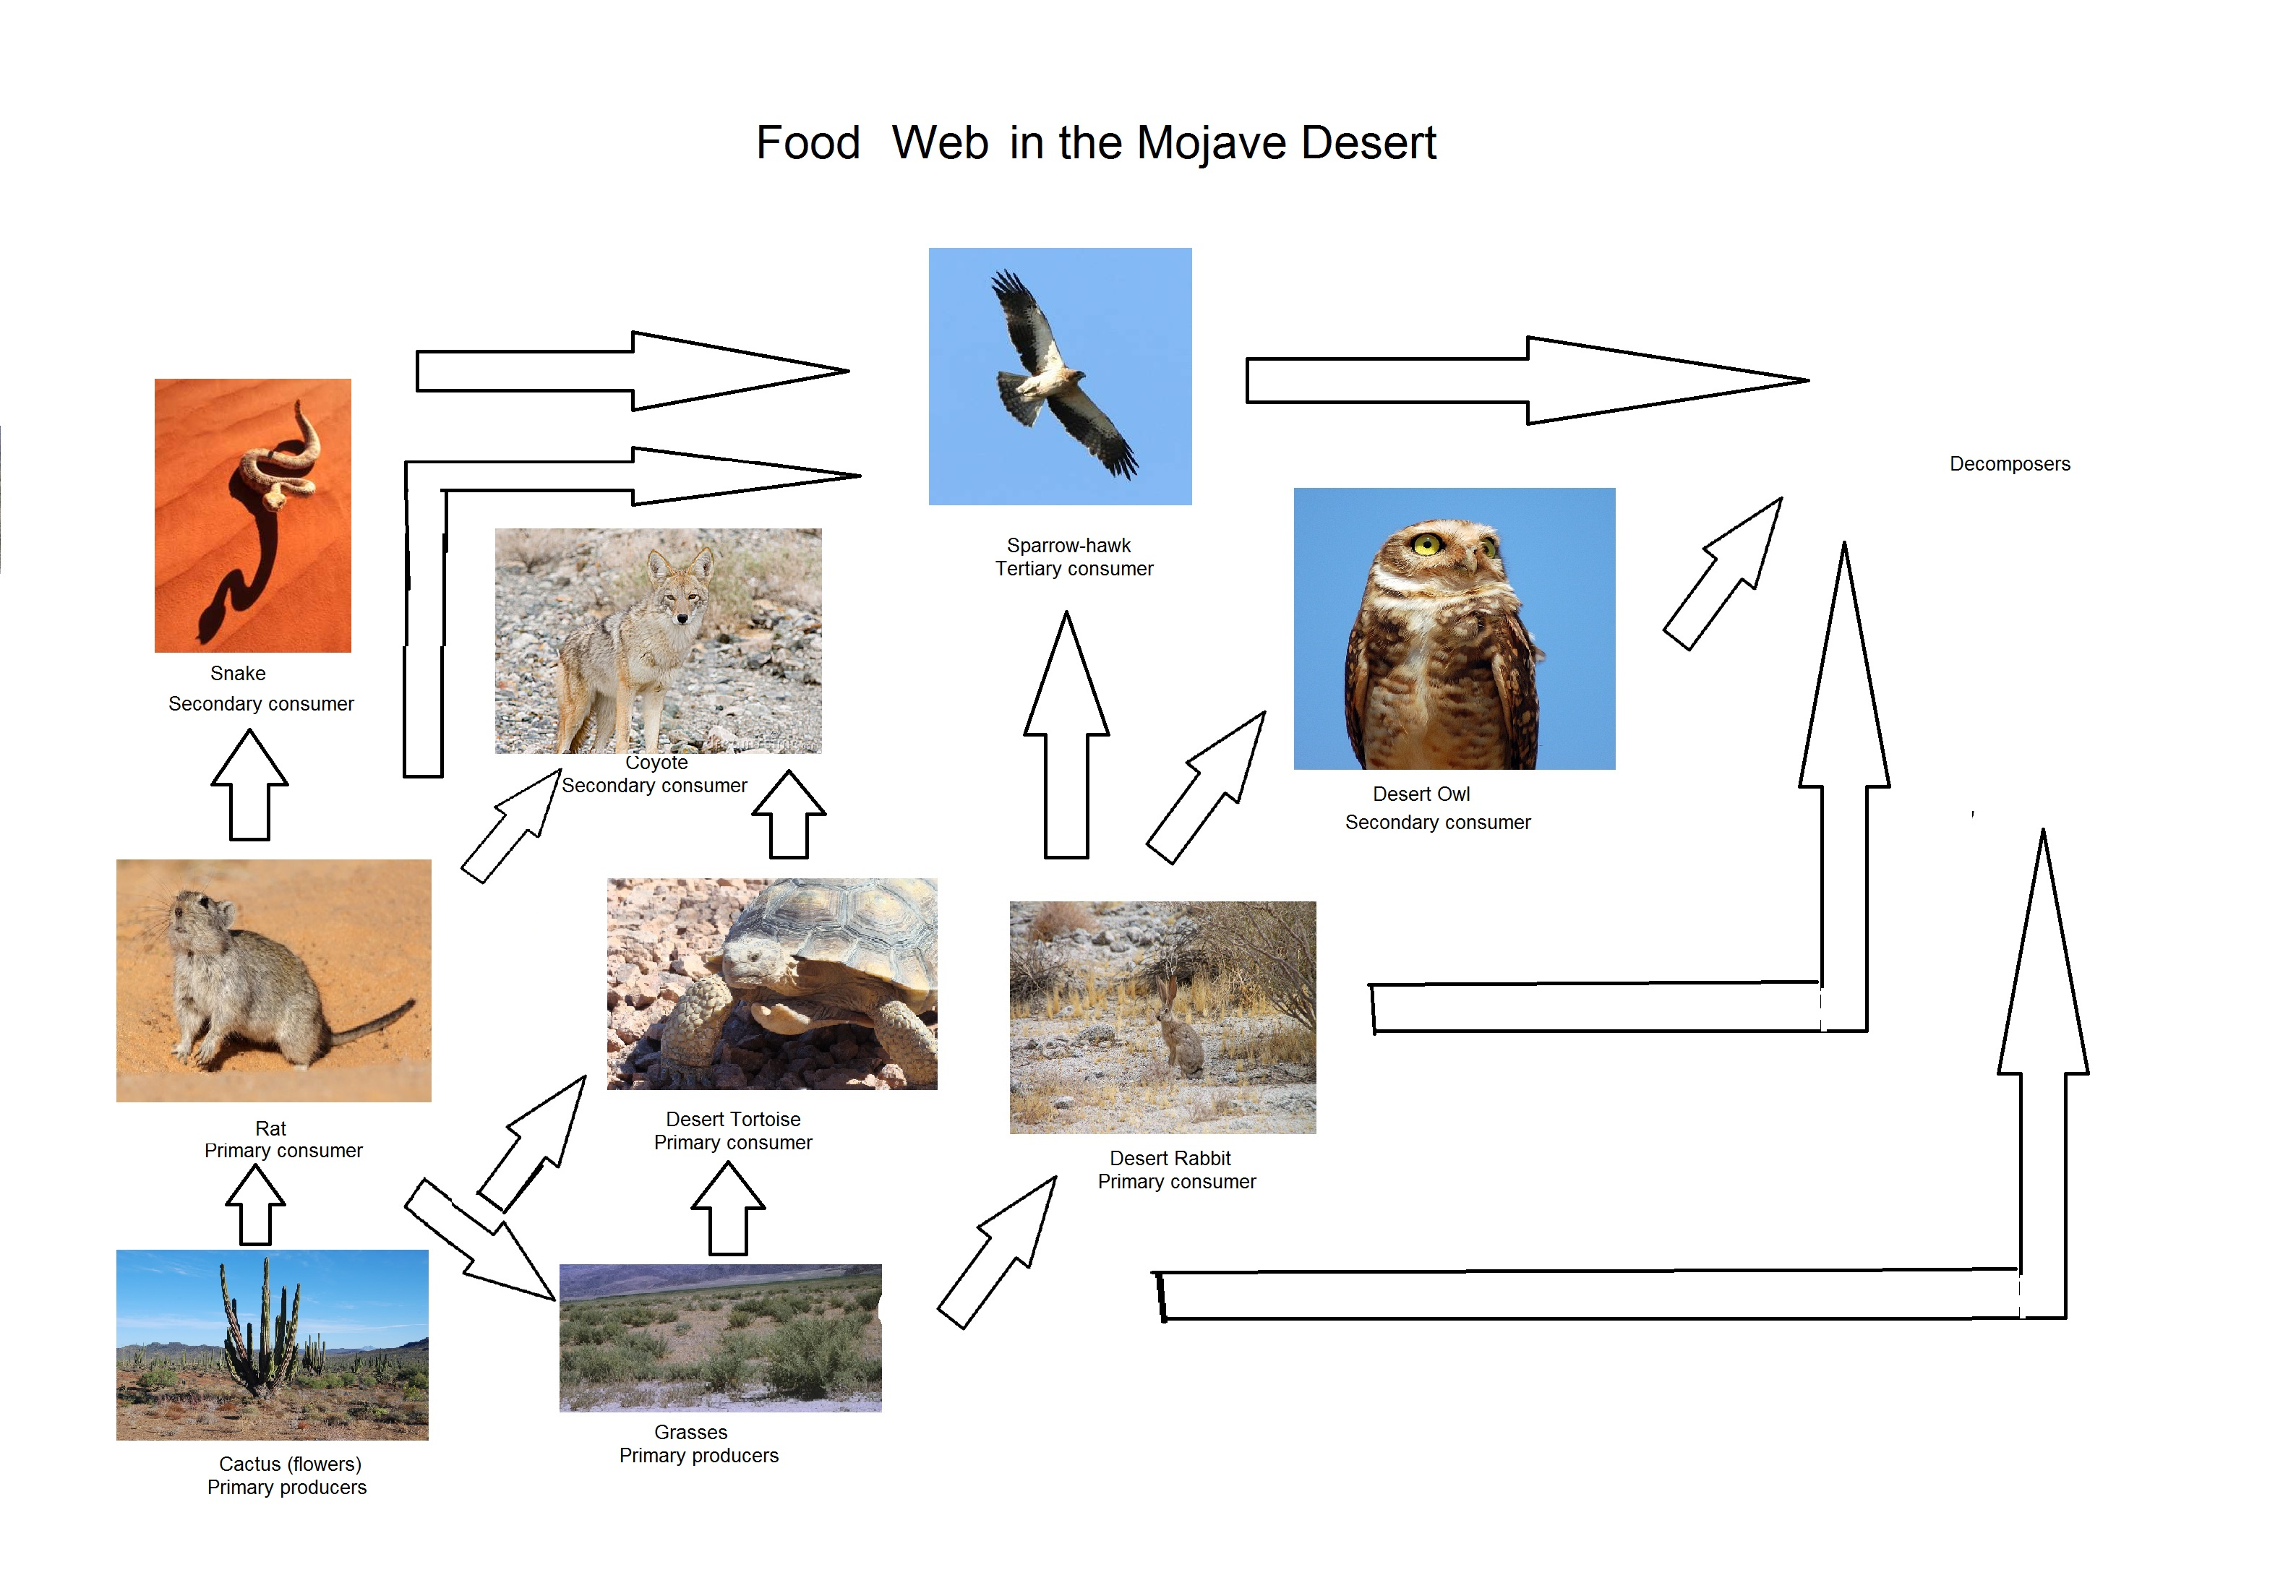 Food Web Of The Mojave Desert